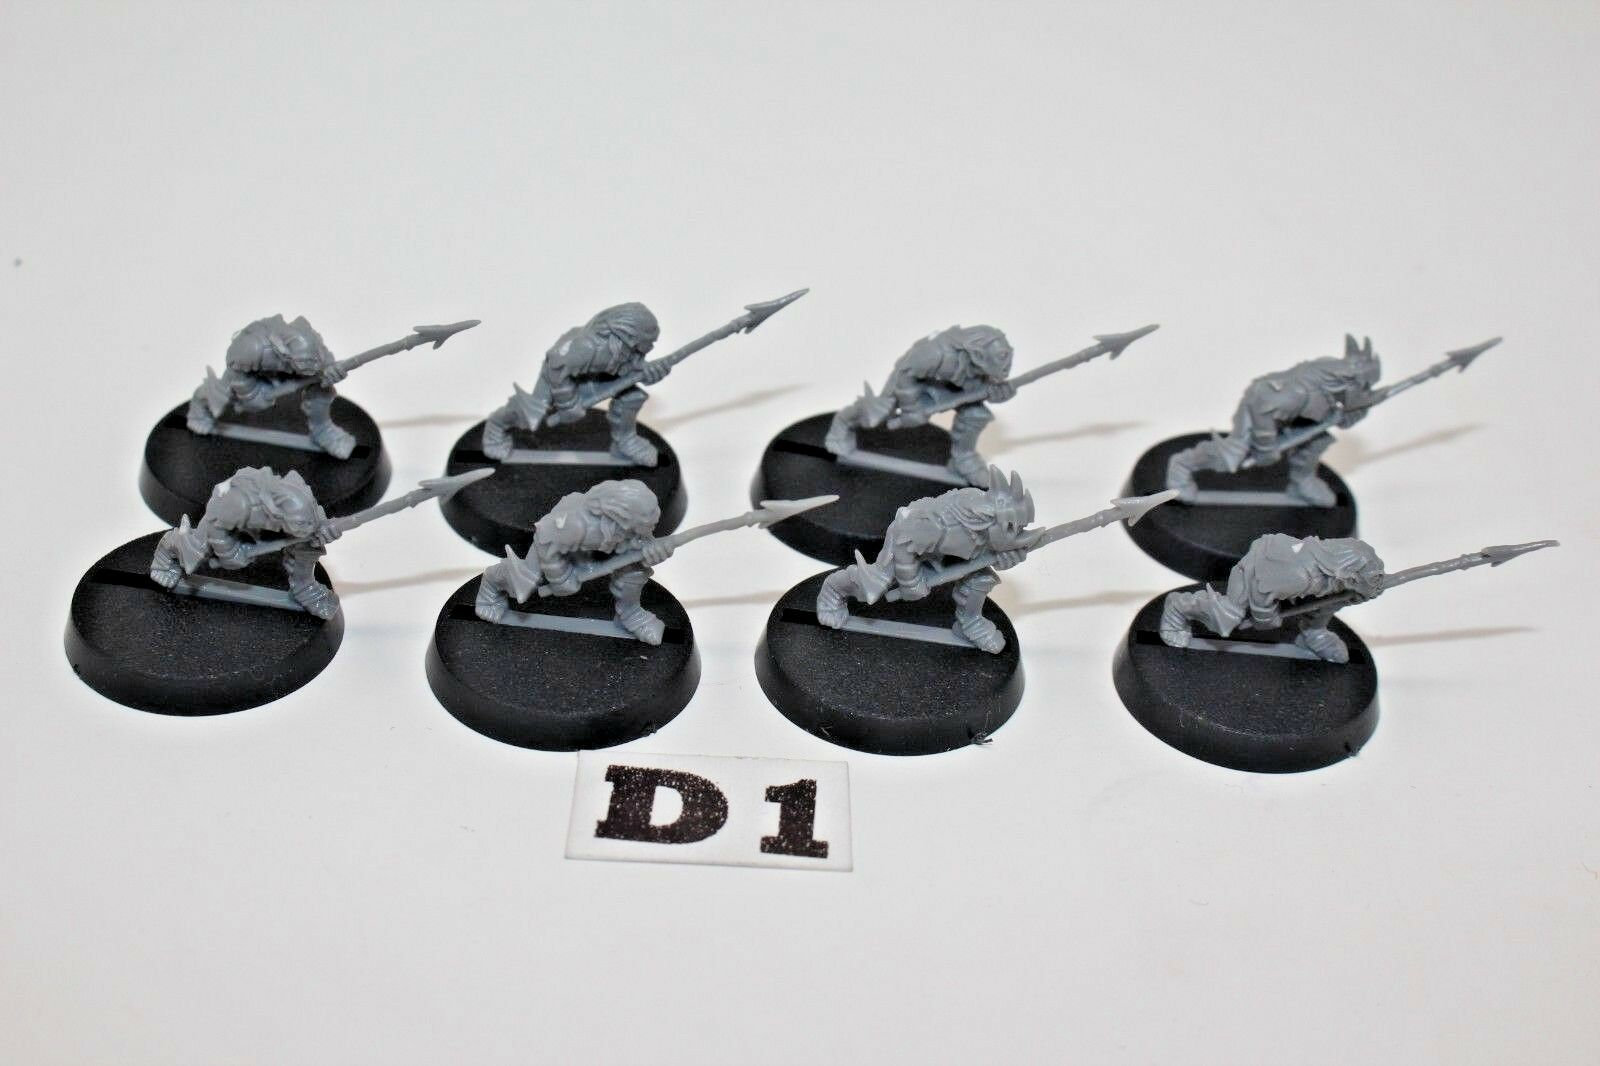 Lord Of The Rings Moria Goblins Spears - D1